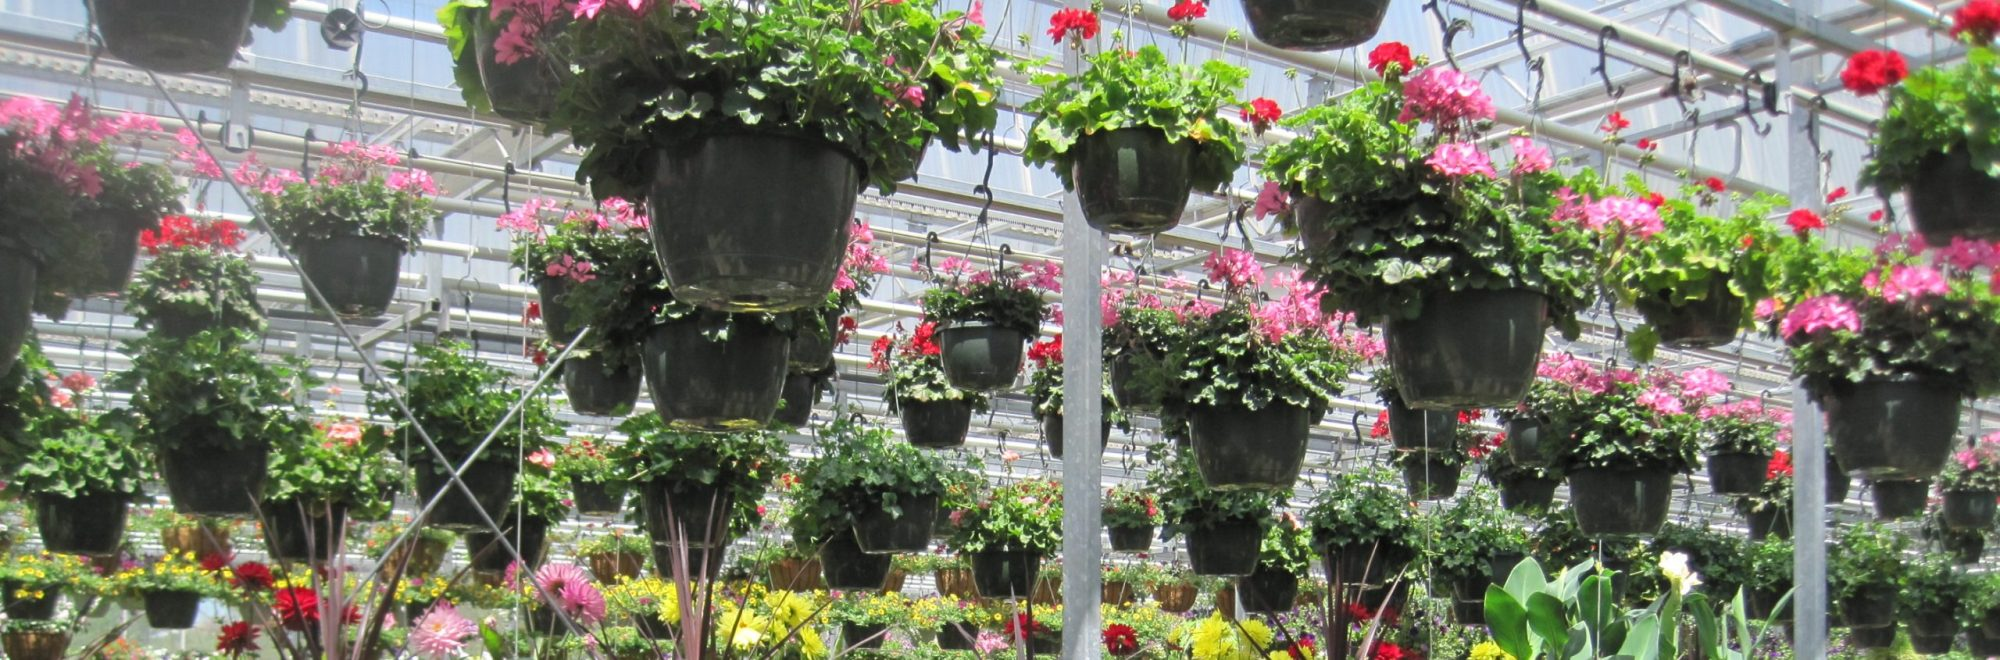 flowers and hanging basket in greenhouse at The Garden in Woodbury, CT, photo taken by Leanne Pundt